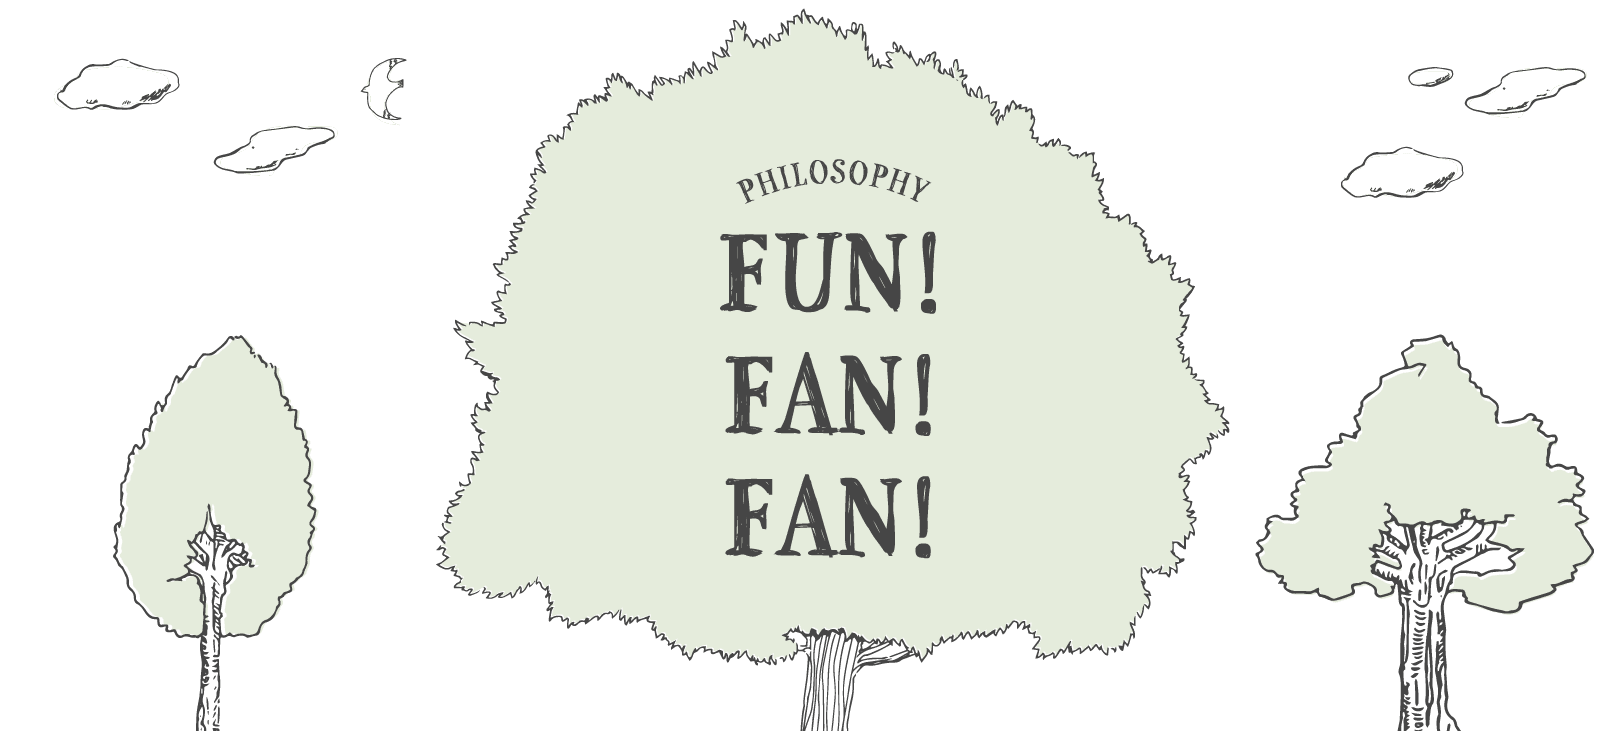 Philosophy FUN!FAN!FAN!